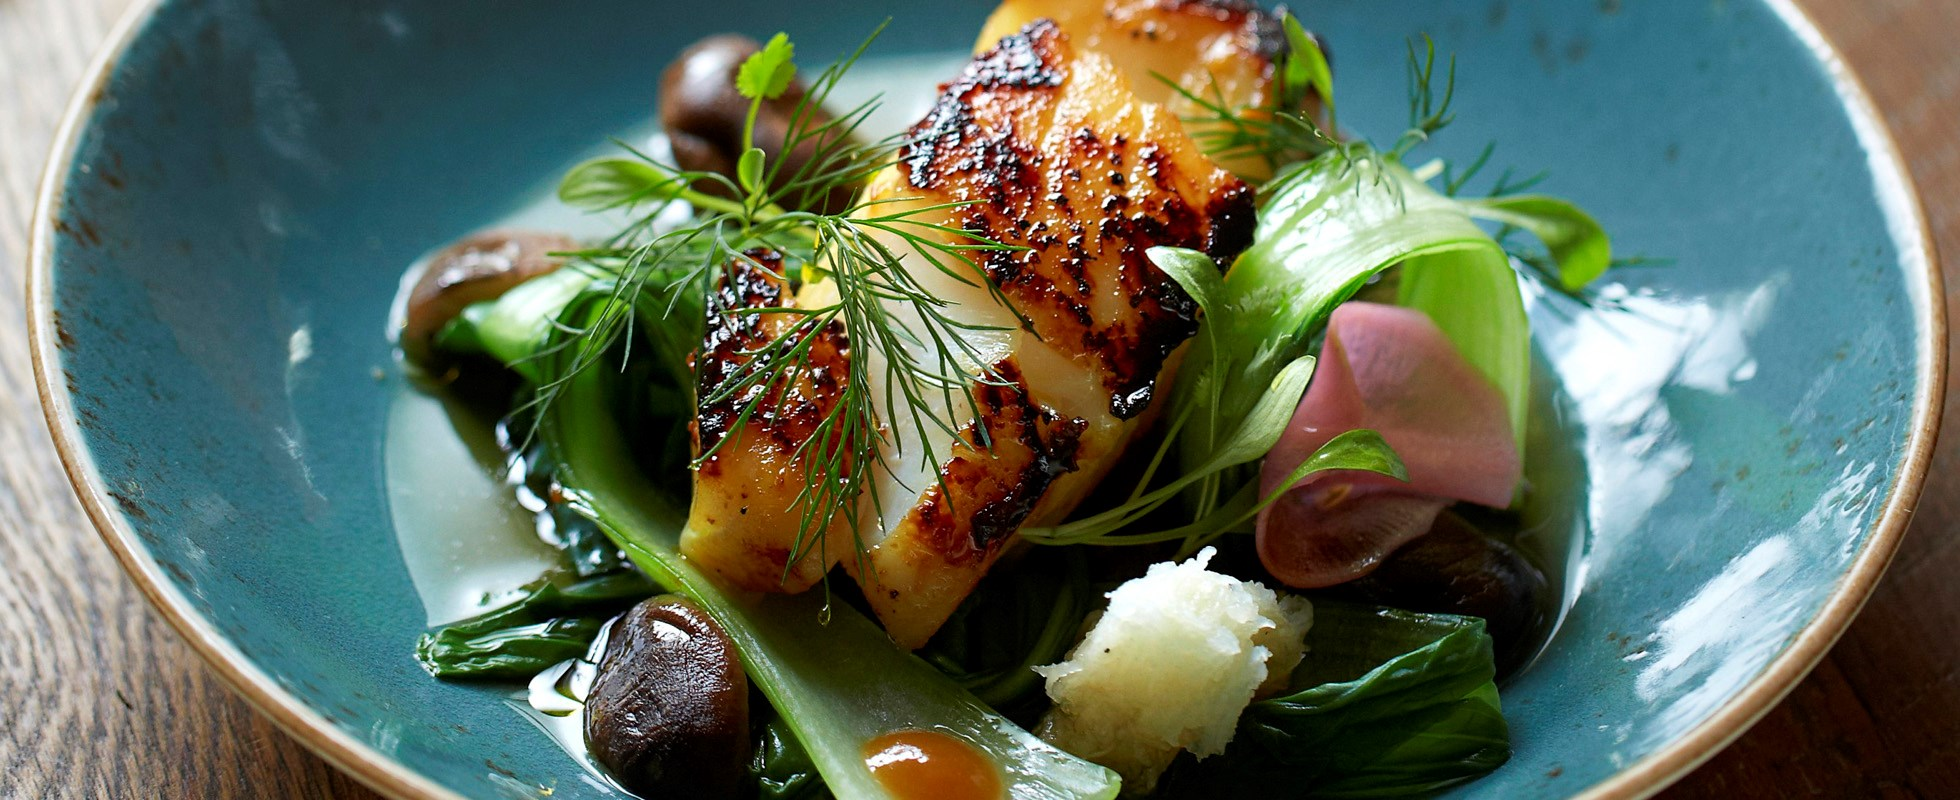 16 best ever japanese recipes olive magazine olive magazine the best blackened cod recipe marinated in miso with pak choi and shiitake mushrooms this dish from londons the city barge pub will impress your friends forumfinder Images